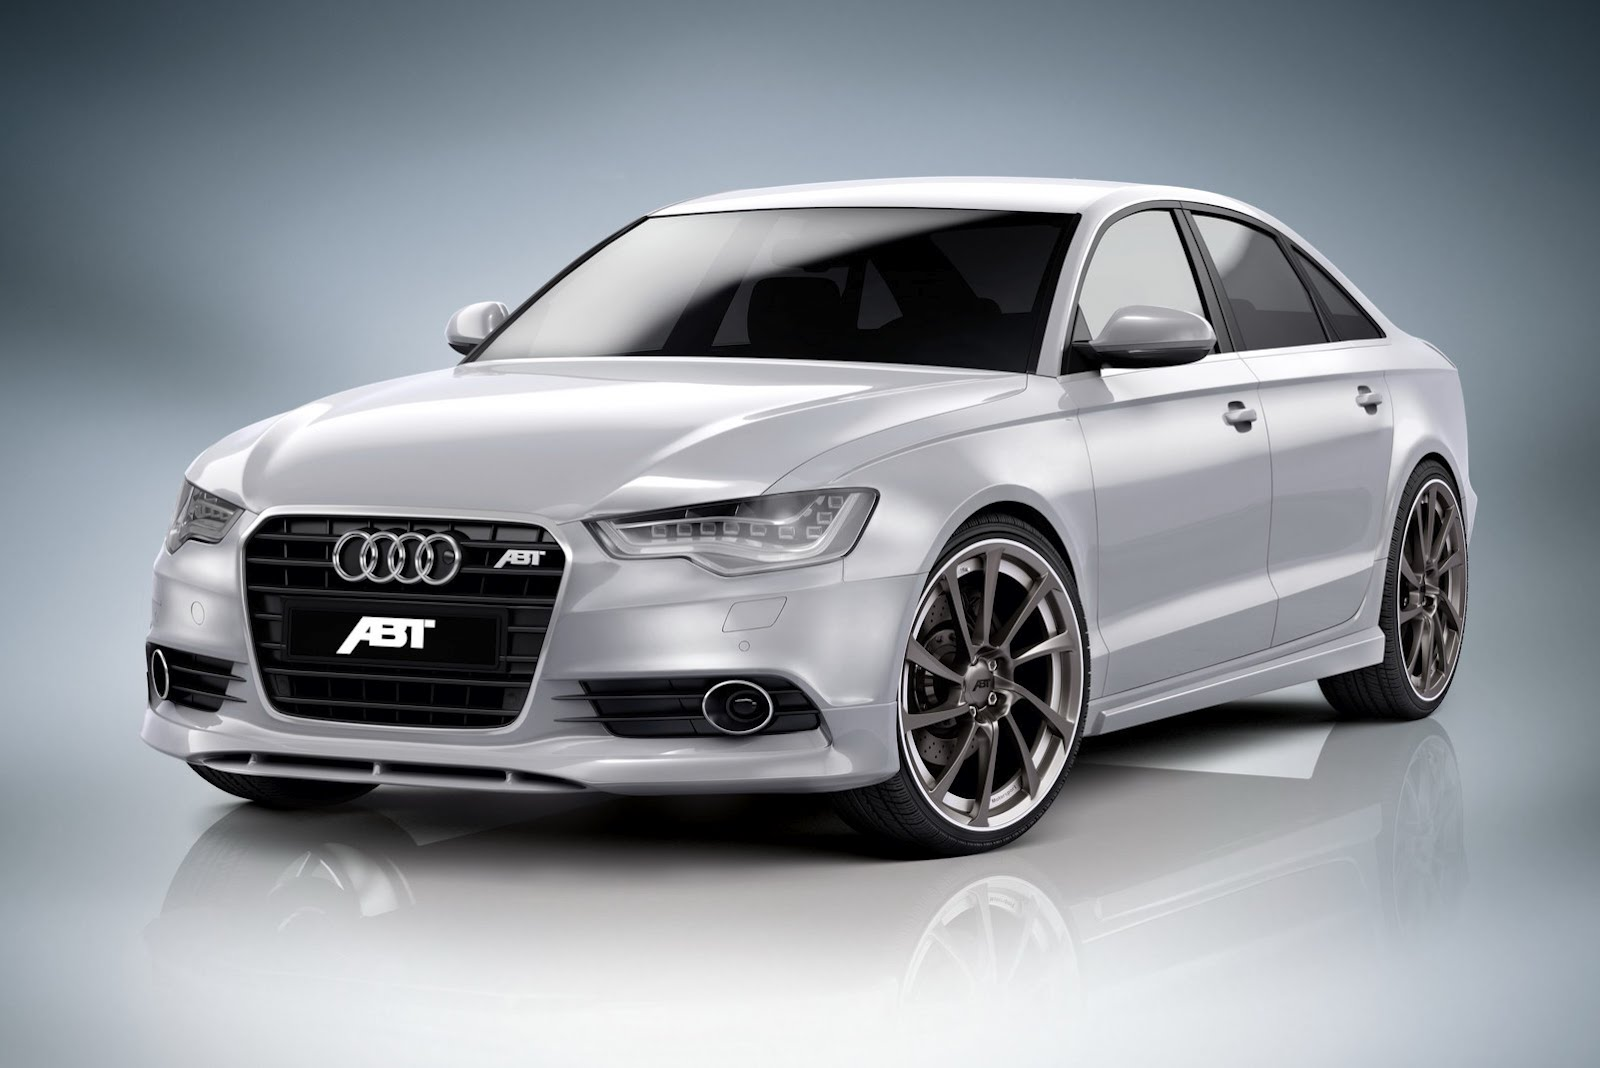 New Audi A6 gets power boost from ABT Sportsline